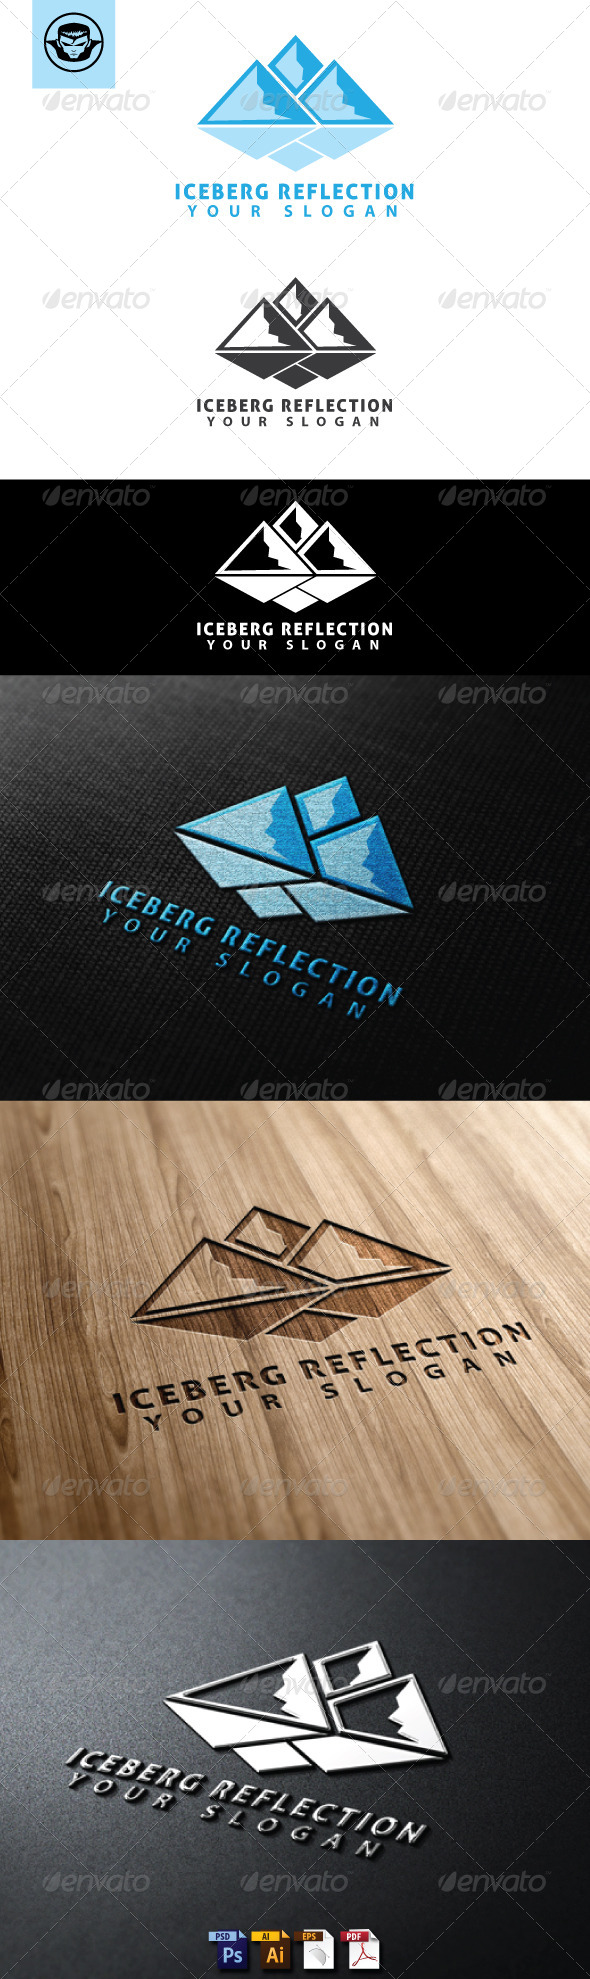 Iceberg Reflection Logo Template - Nature Logo Templates